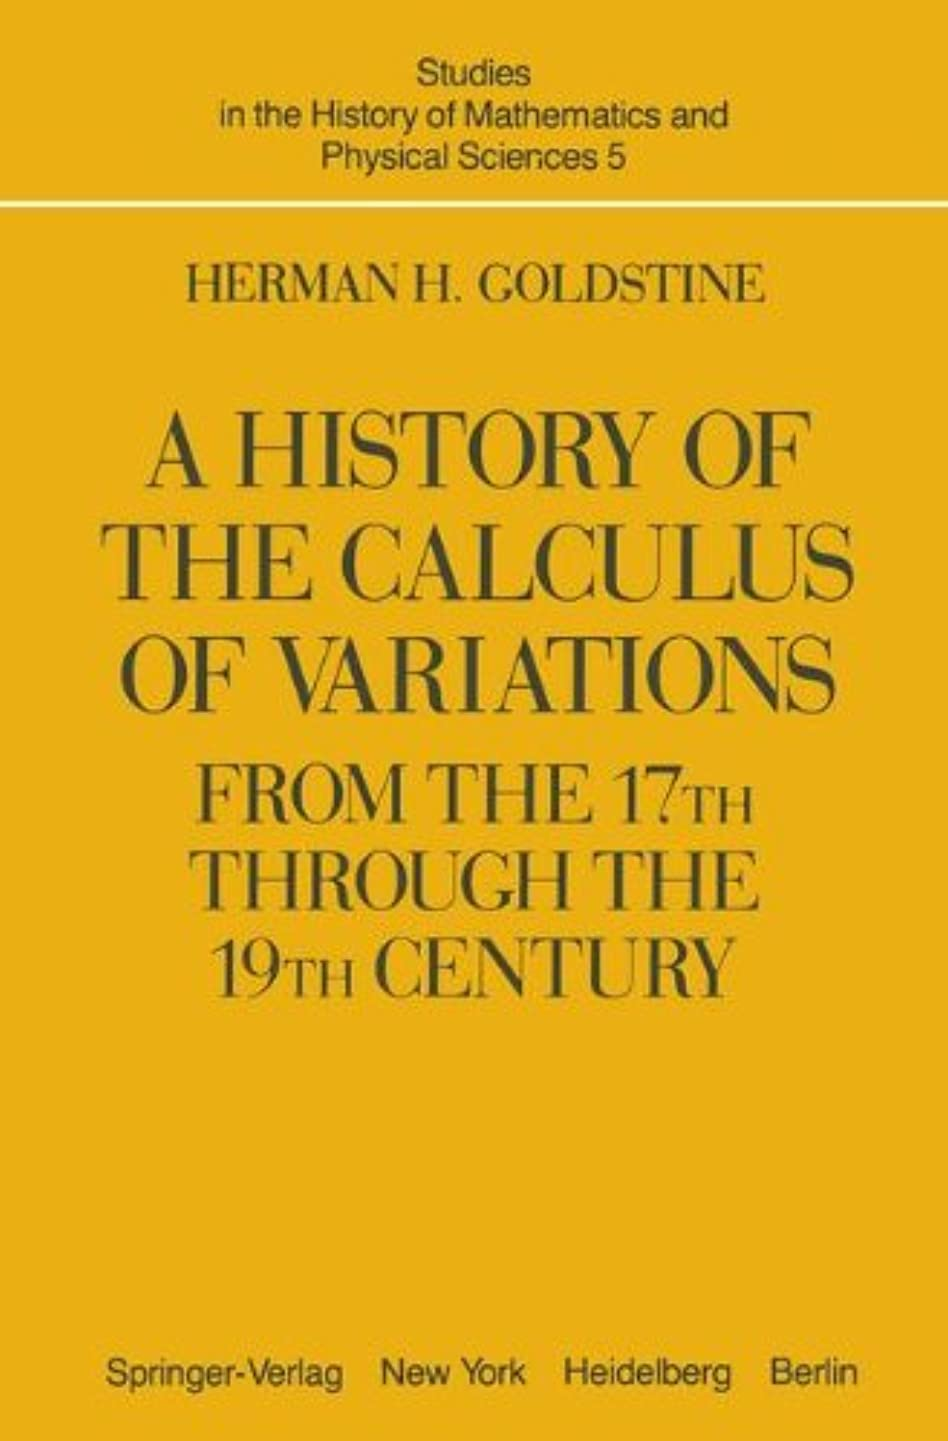 同じスリム呼び出すA History of the Calculus of Variations from the 17th through the 19th Century (Studies in the History of Mathematics and Physical Sciences)